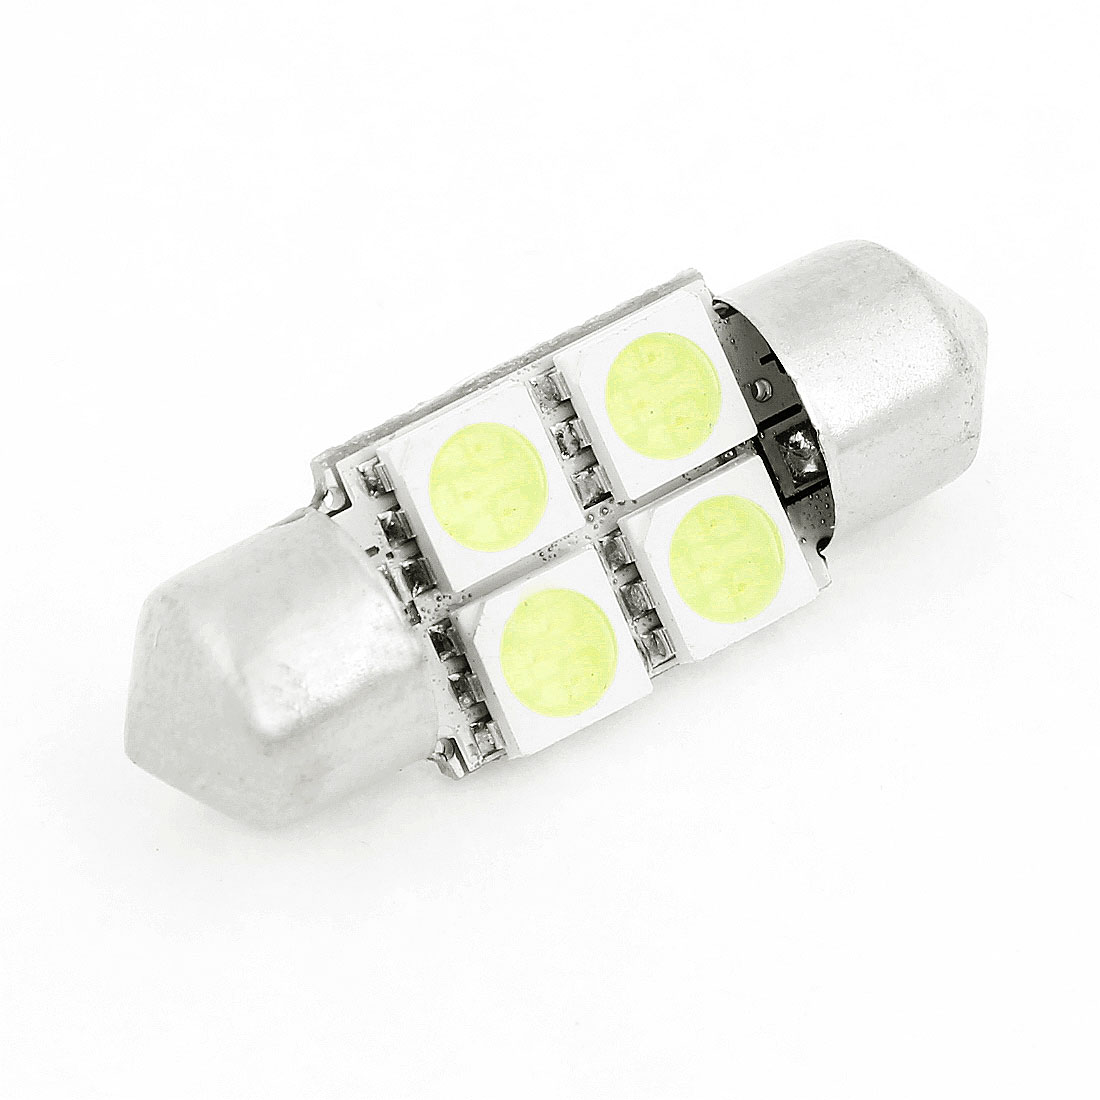 31mm Festoon 4 White 5050 SMD LED Interior Lamp for Auto Car